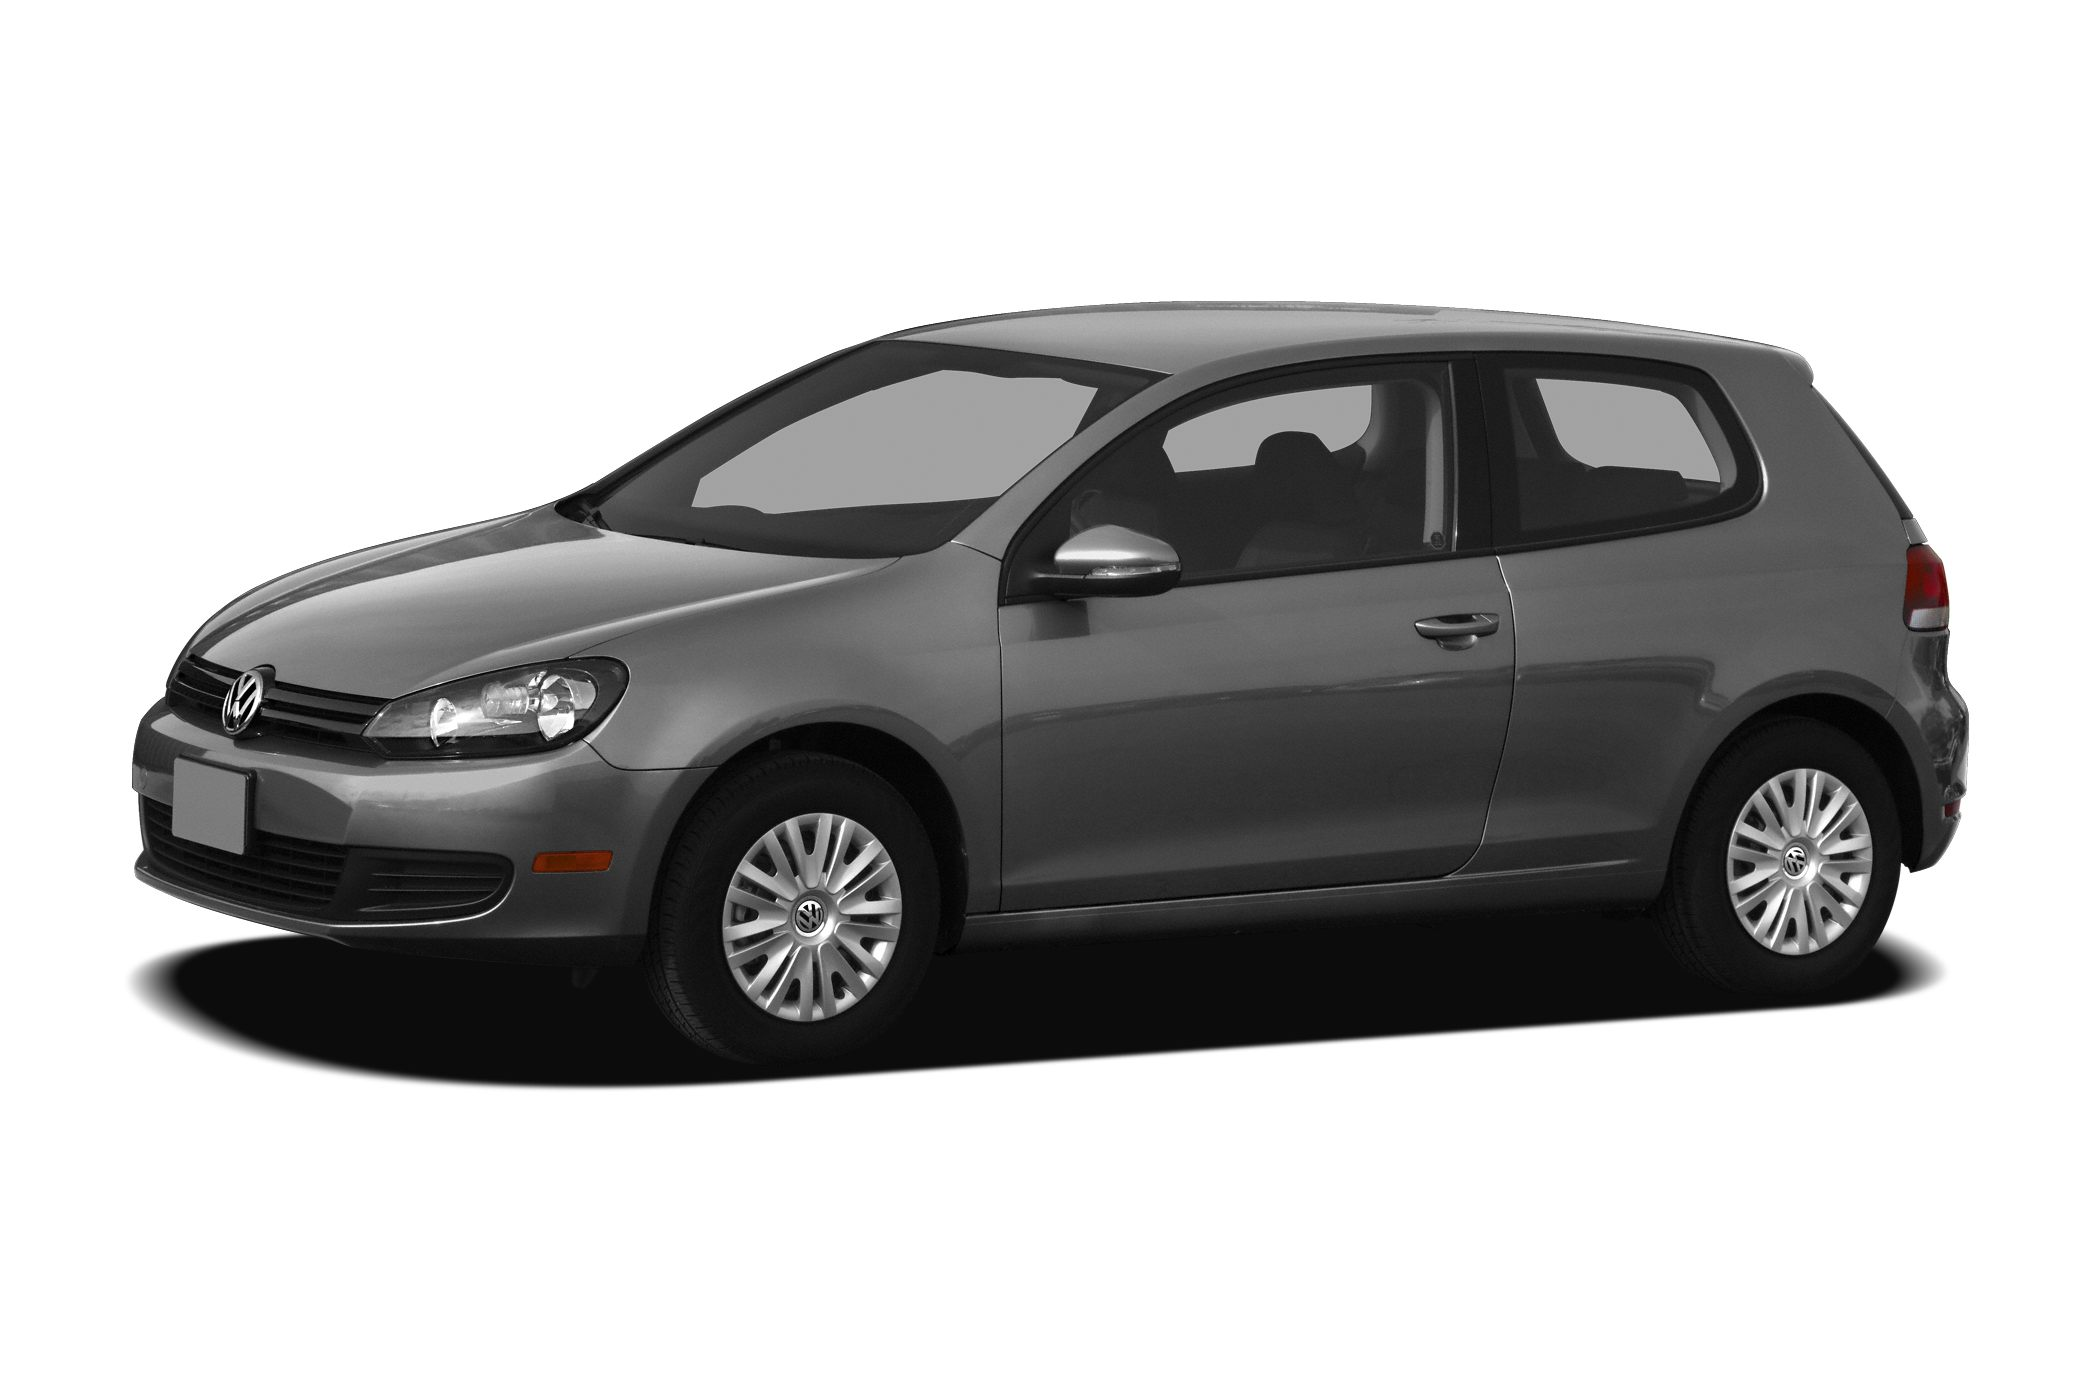 2011 Volkswagen Golf 2.5L Hatchback for sale in Whitefish for $12,990 with 49,781 miles